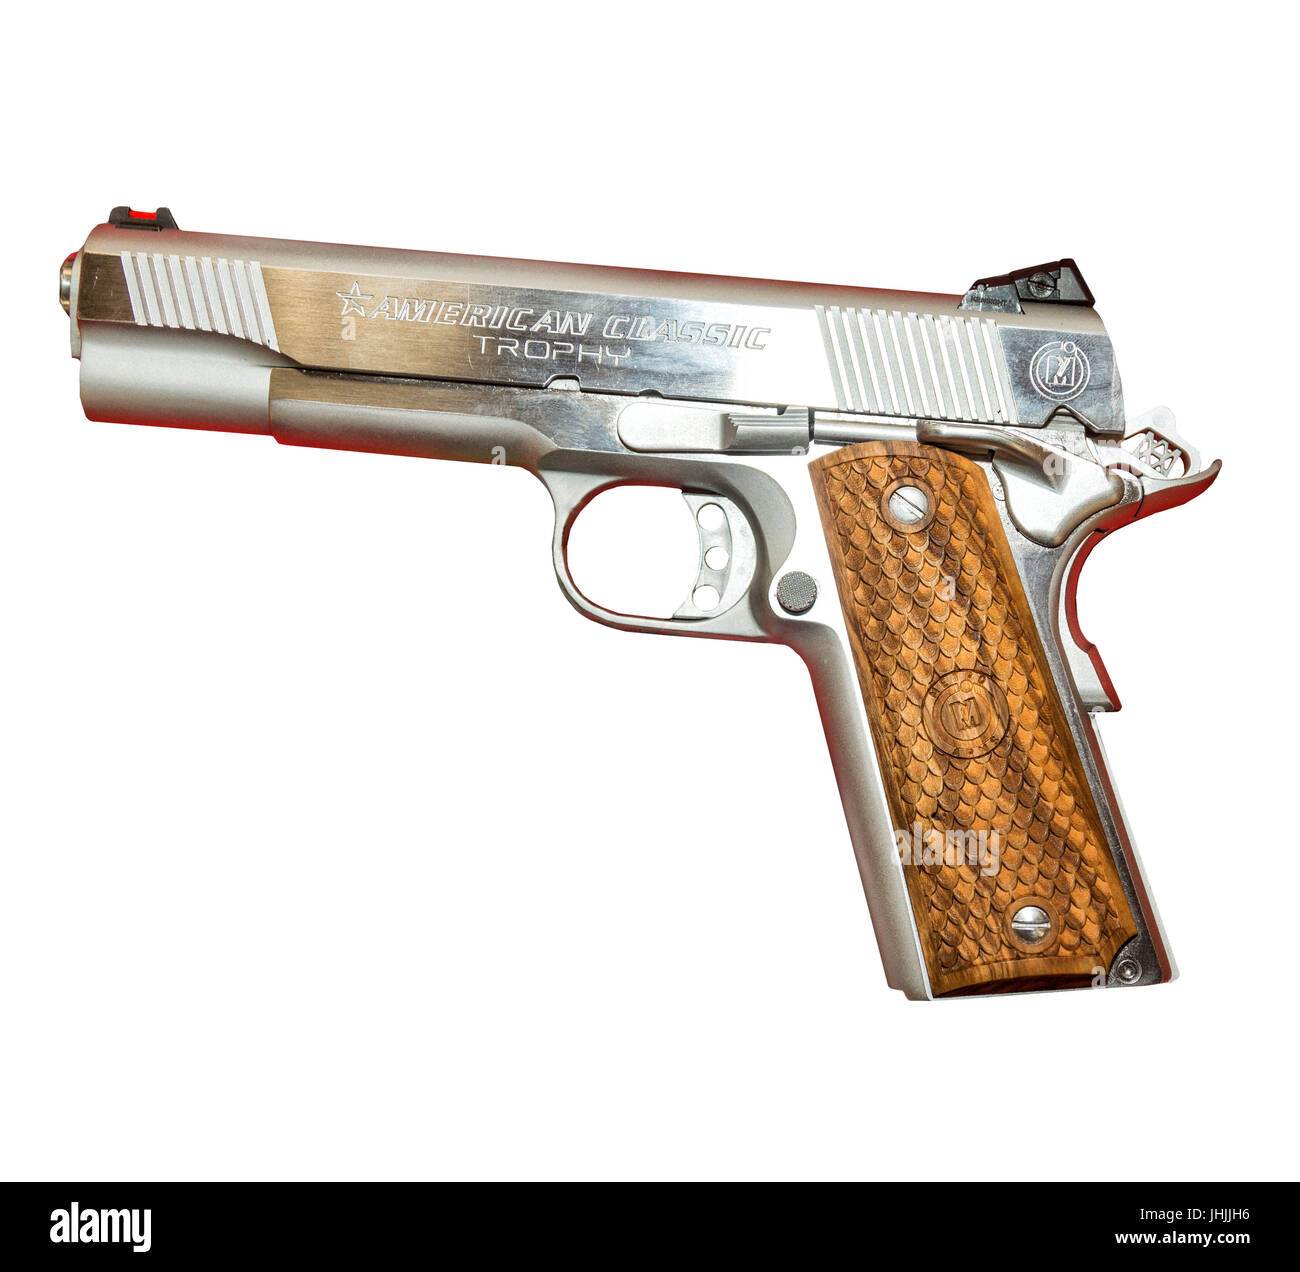 1911 American Classic Pistol on a white background. - Stock Image